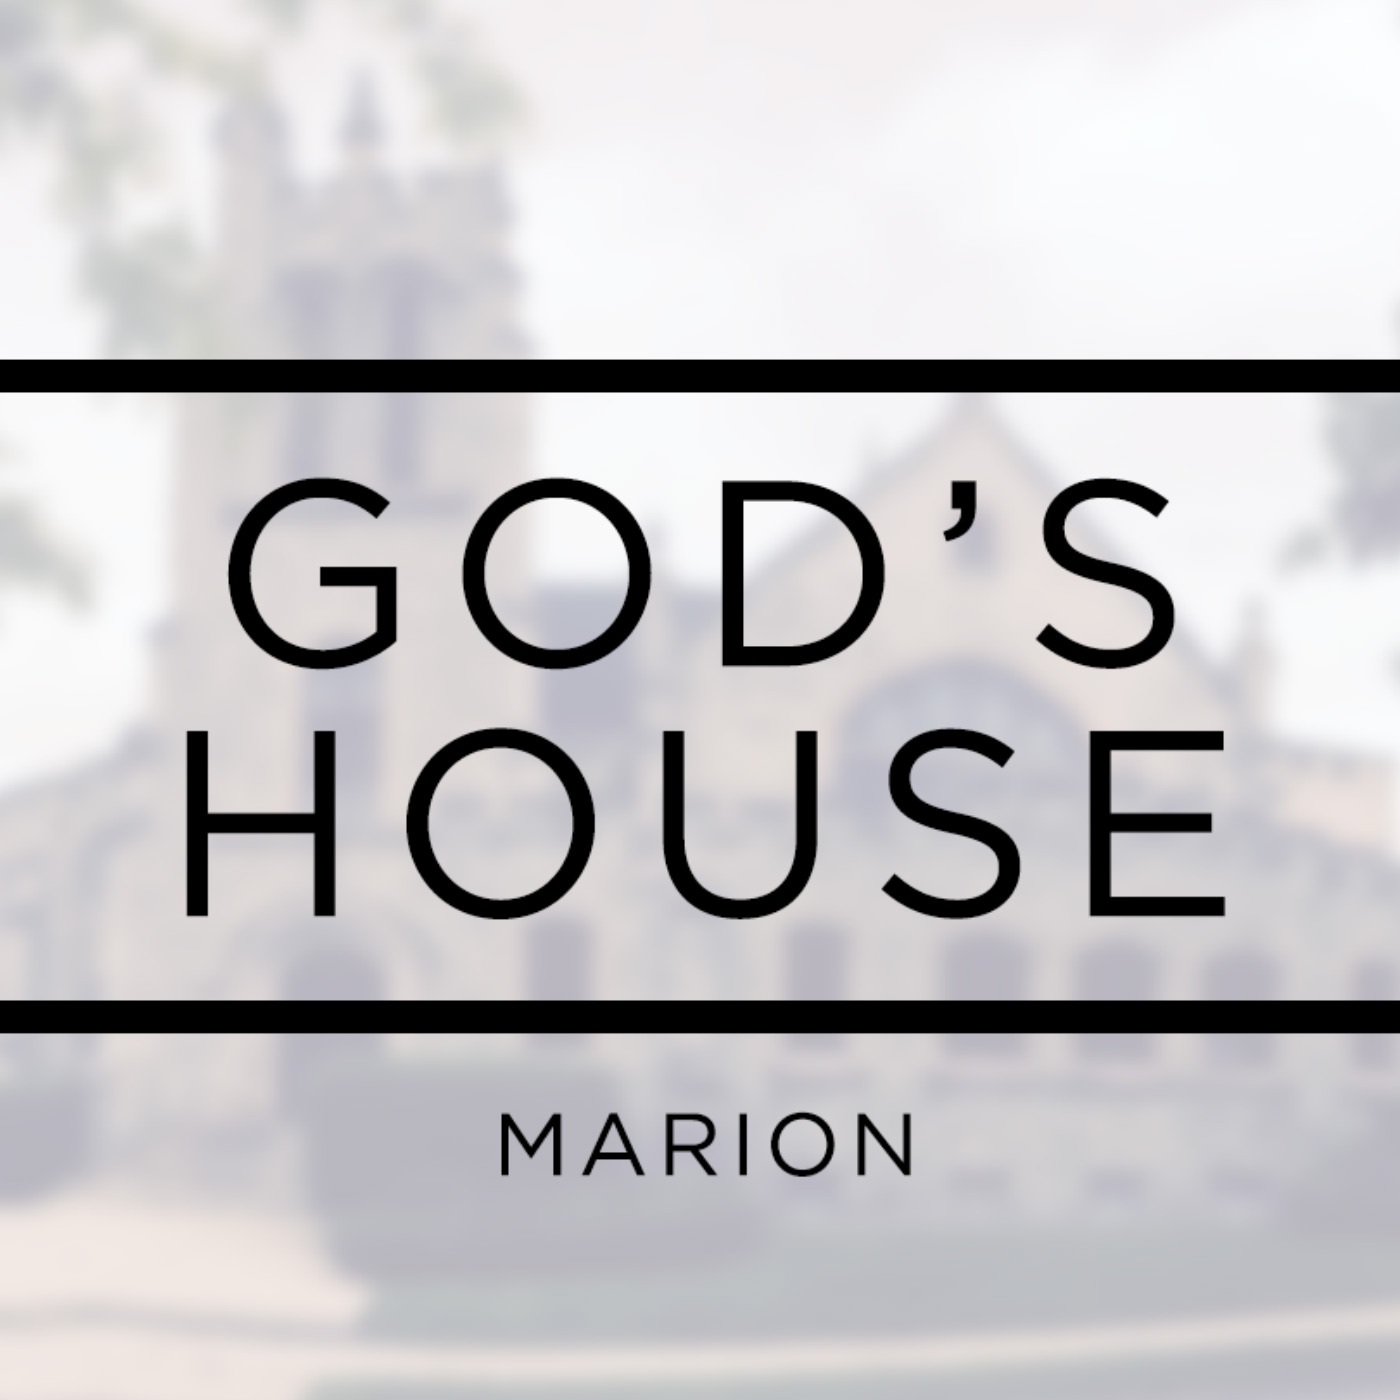 God's House Marion